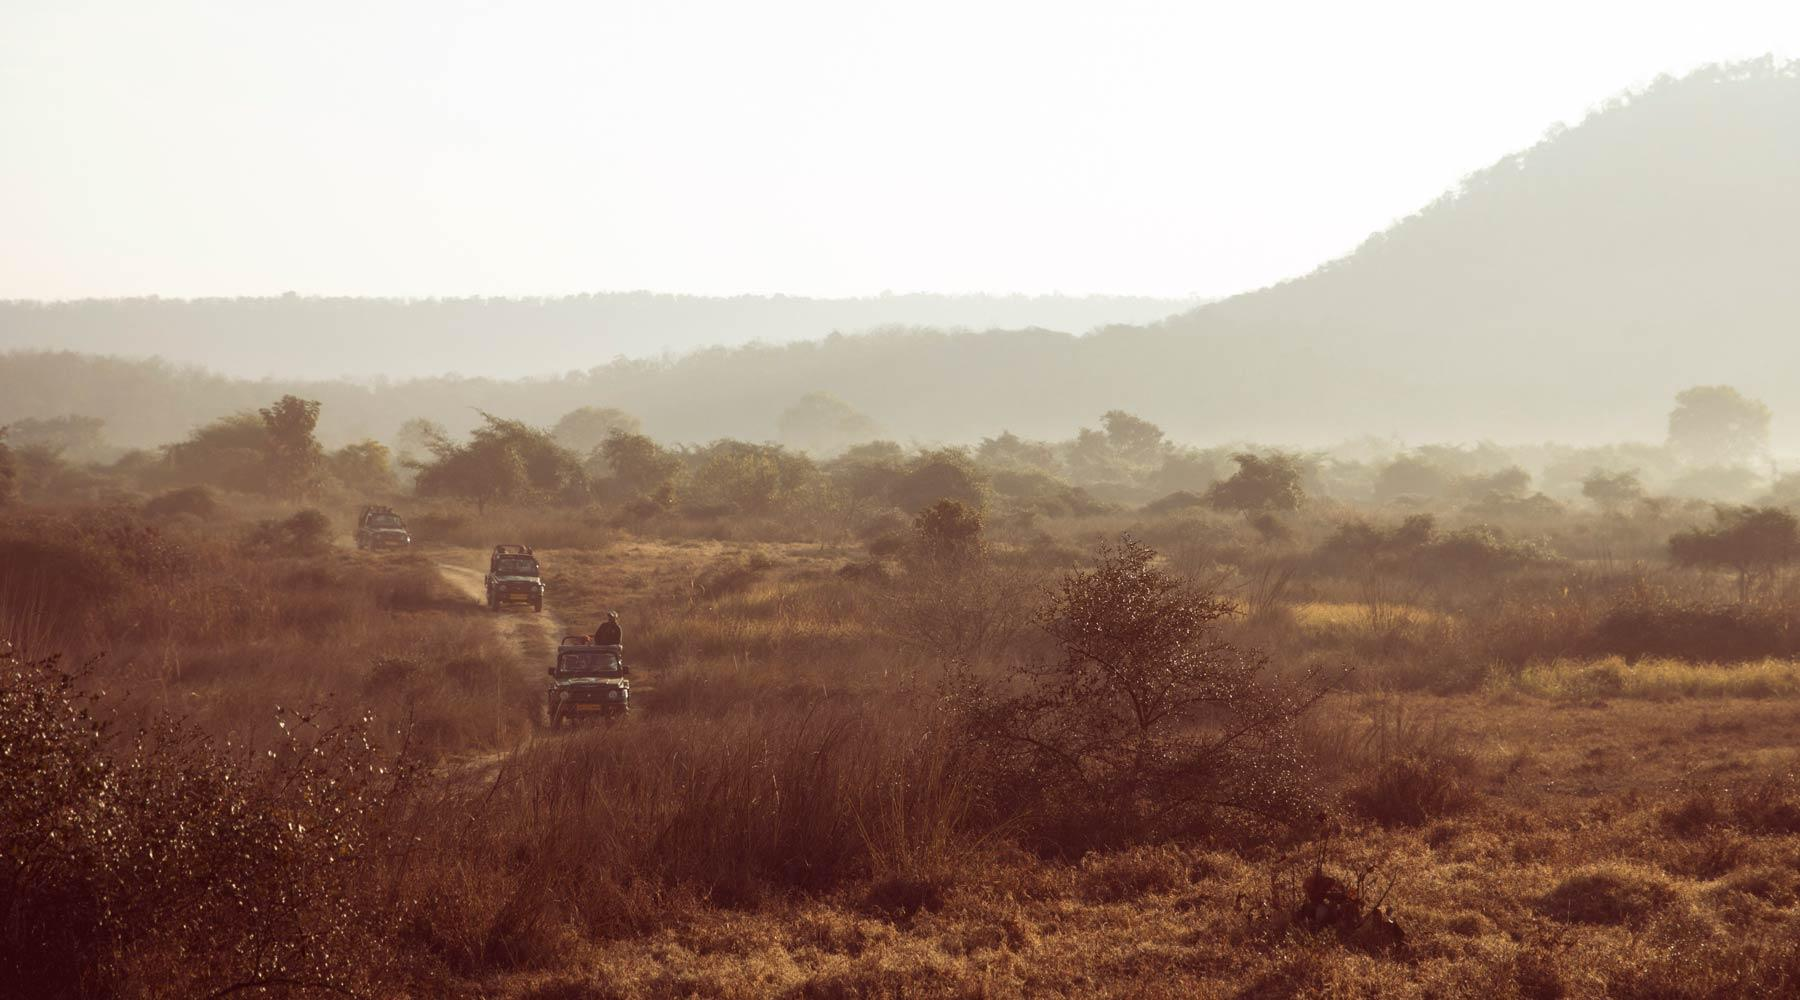 Safaris & Wildlife Experiences